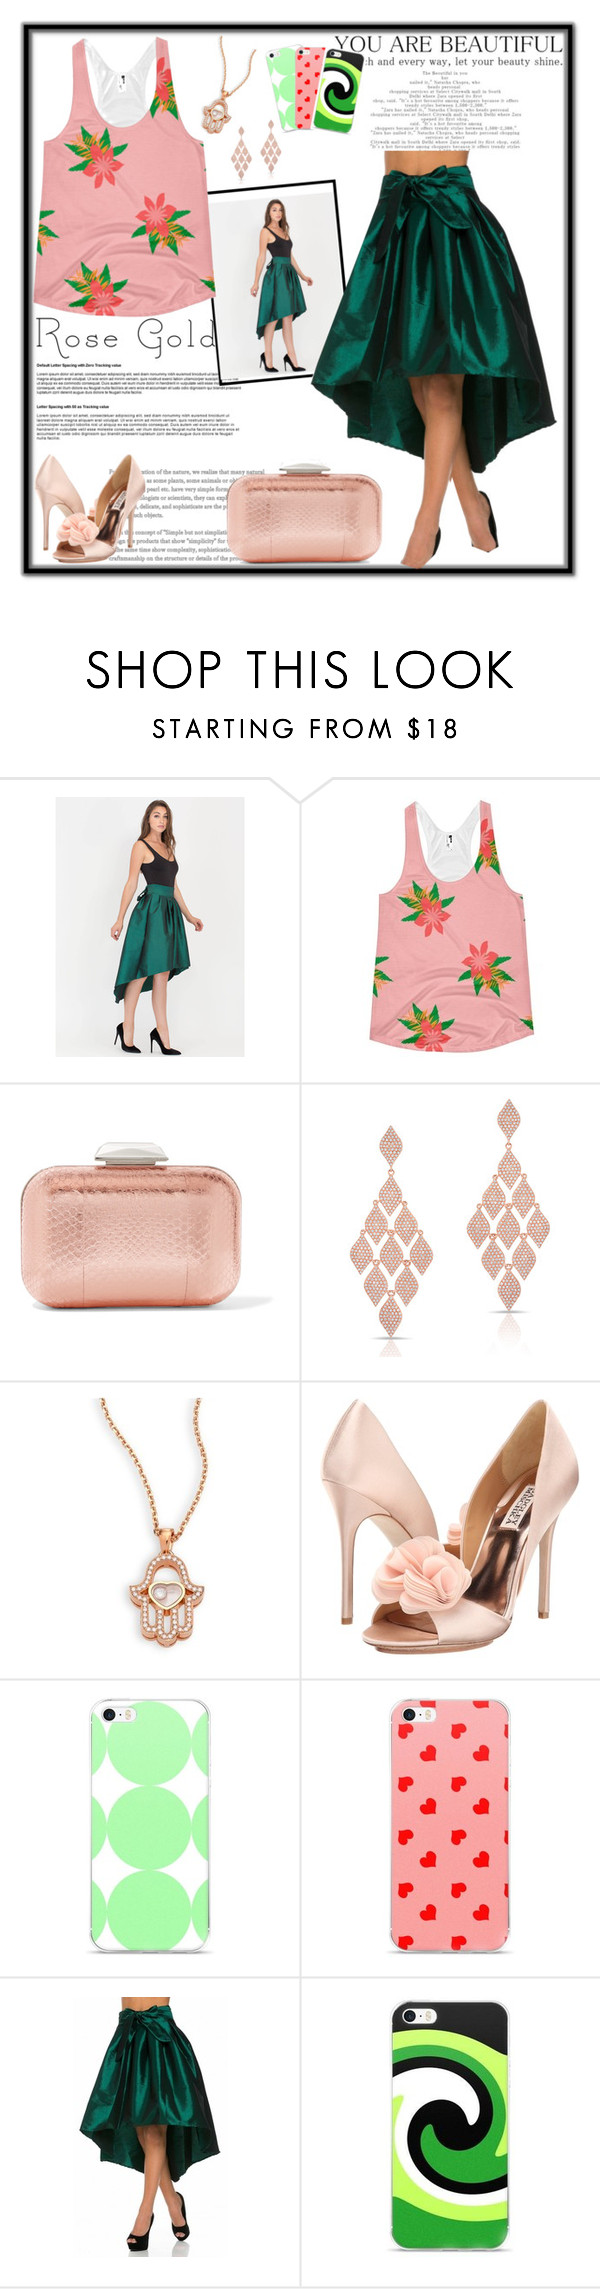 """Rose Gold Chic"" by atelier-briella ❤ liked on Polyvore featuring Jimmy Choo, Anne Sisteron, Chopard, Badgley Mischka, cute, chic and rosegold"